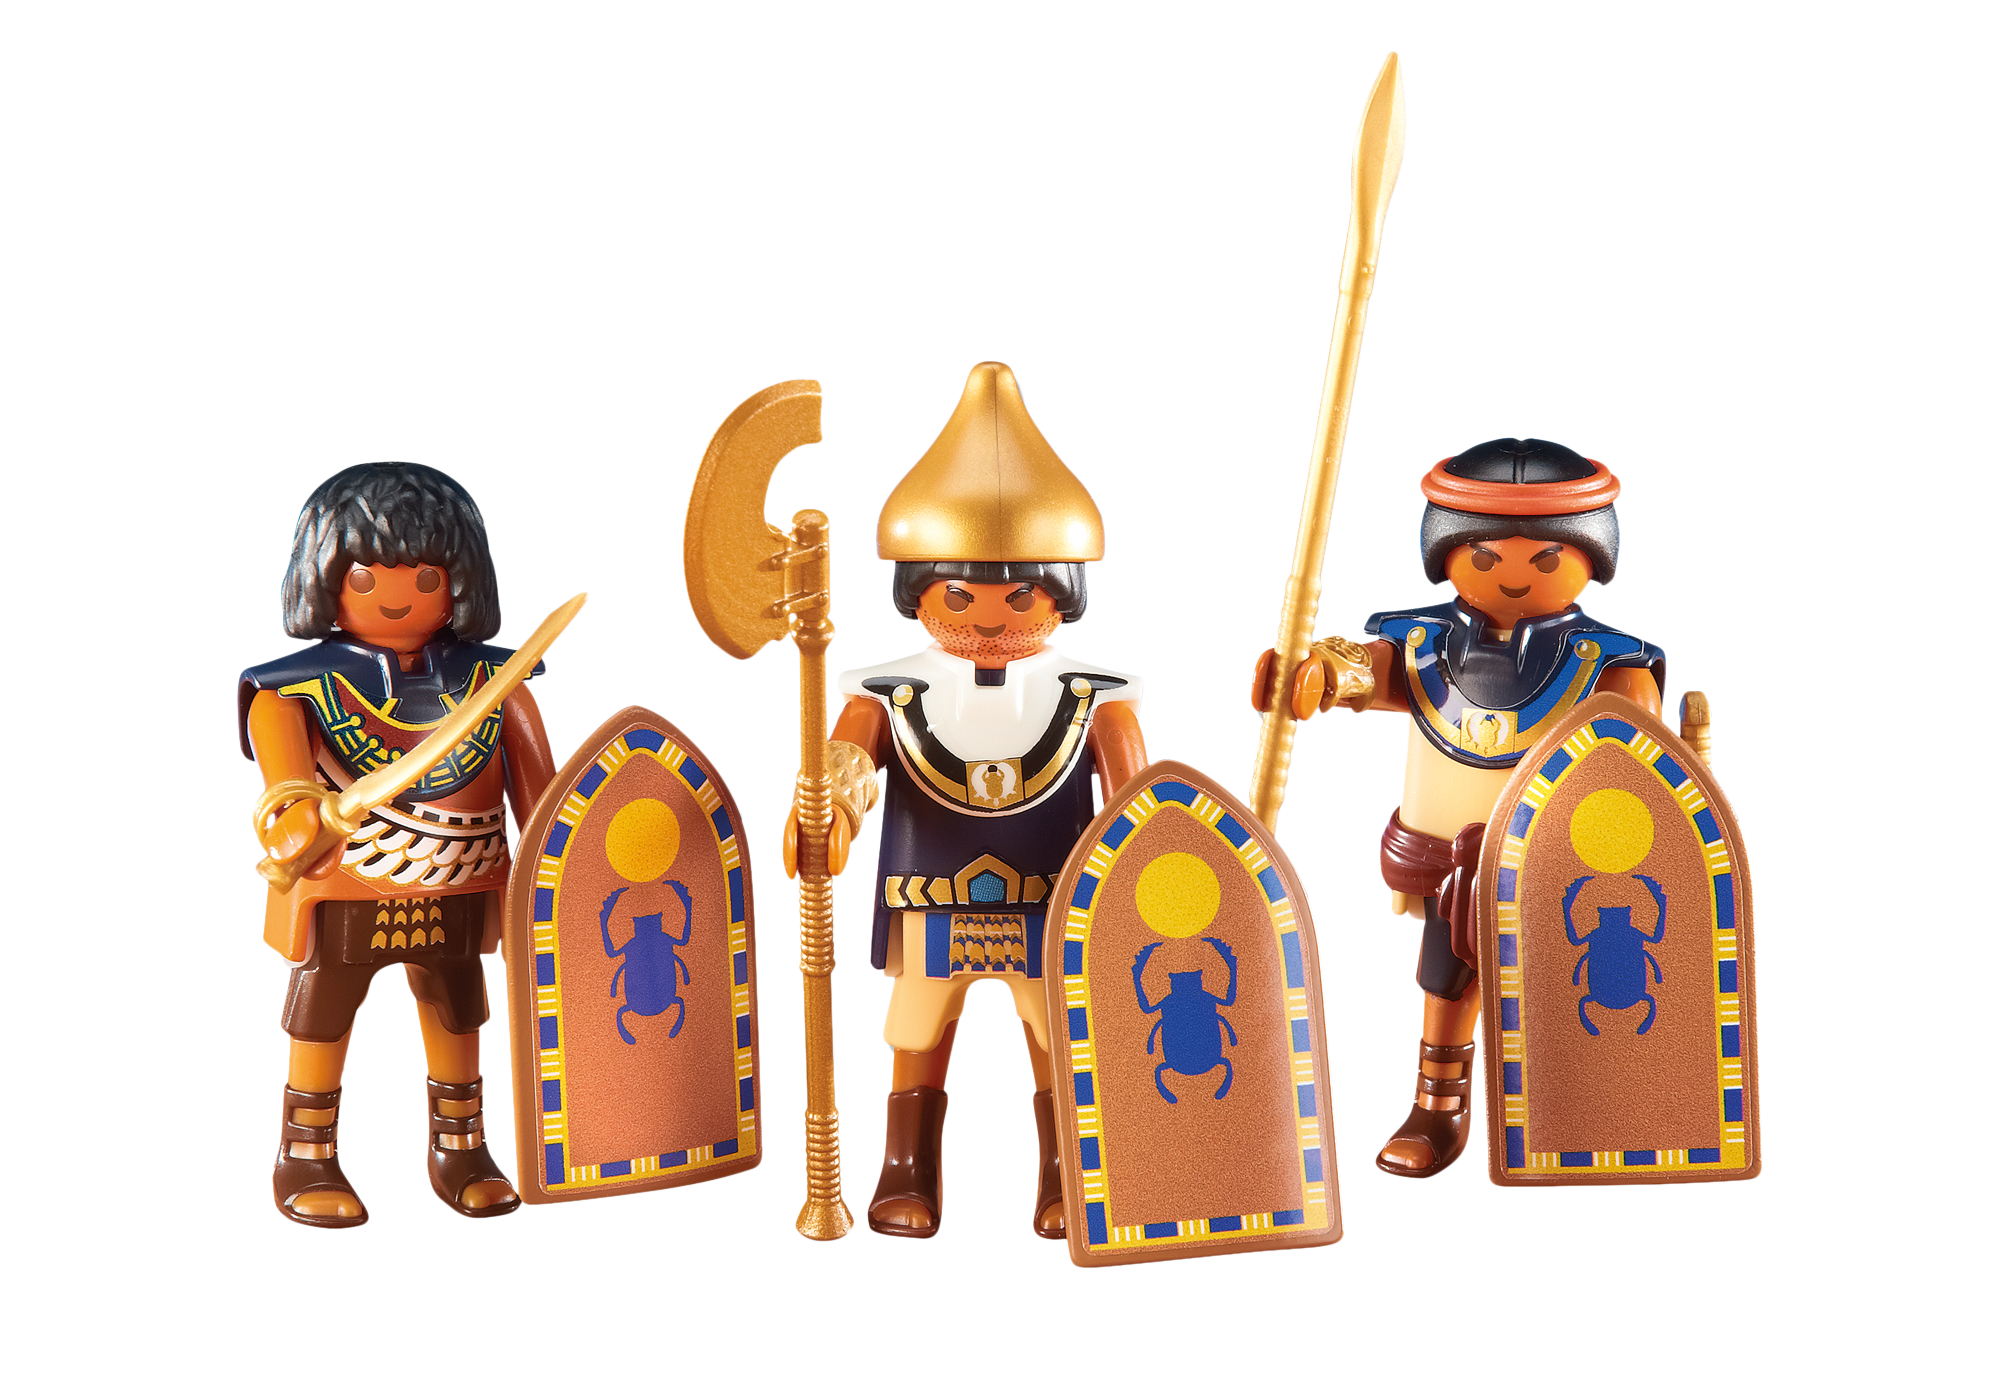 http://media.playmobil.com/i/playmobil/6488_product_detail/3 soldats égyptiens